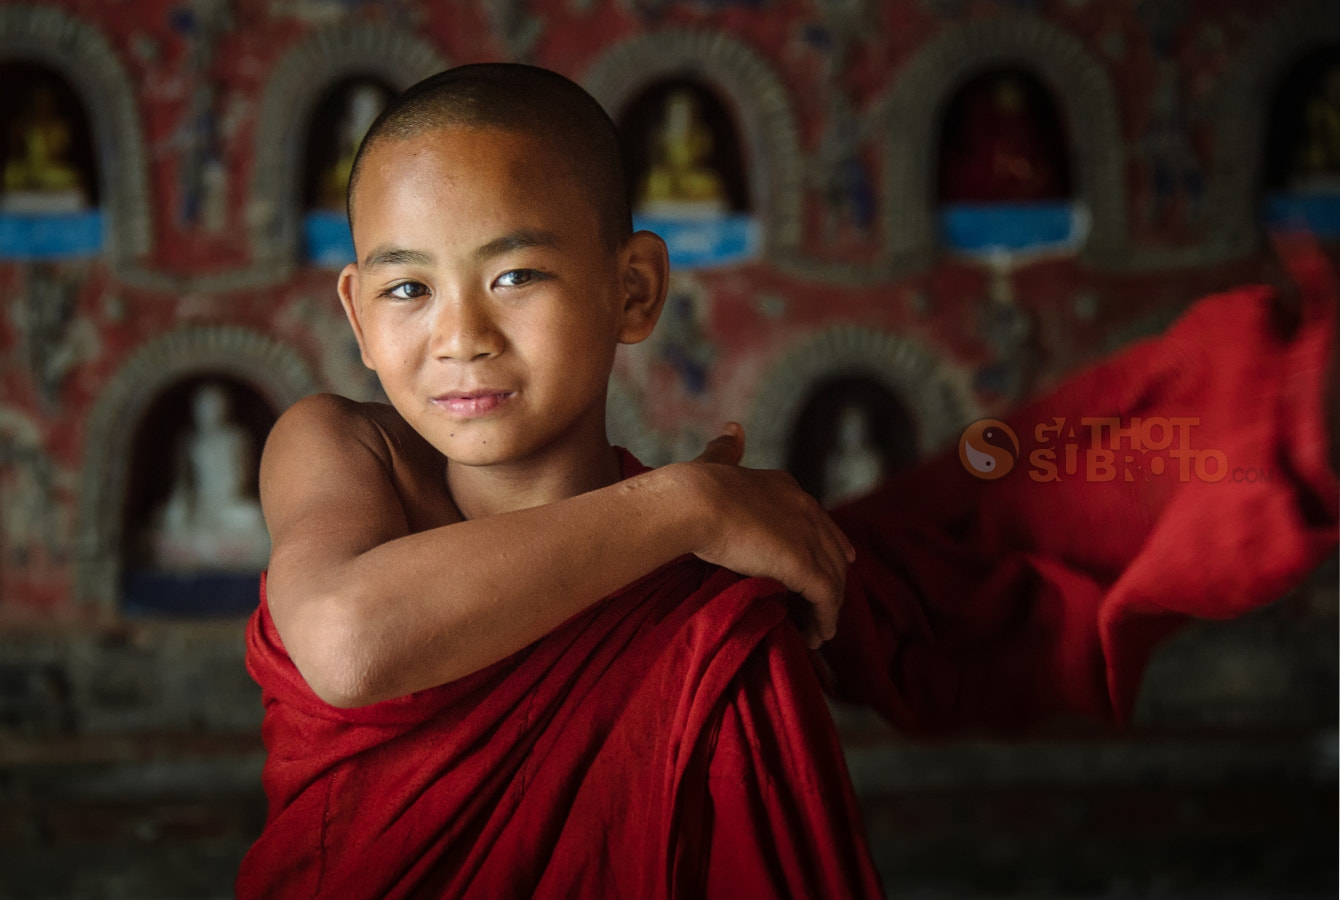 Photograph Cute Monk by Gathot Subroto on 500px